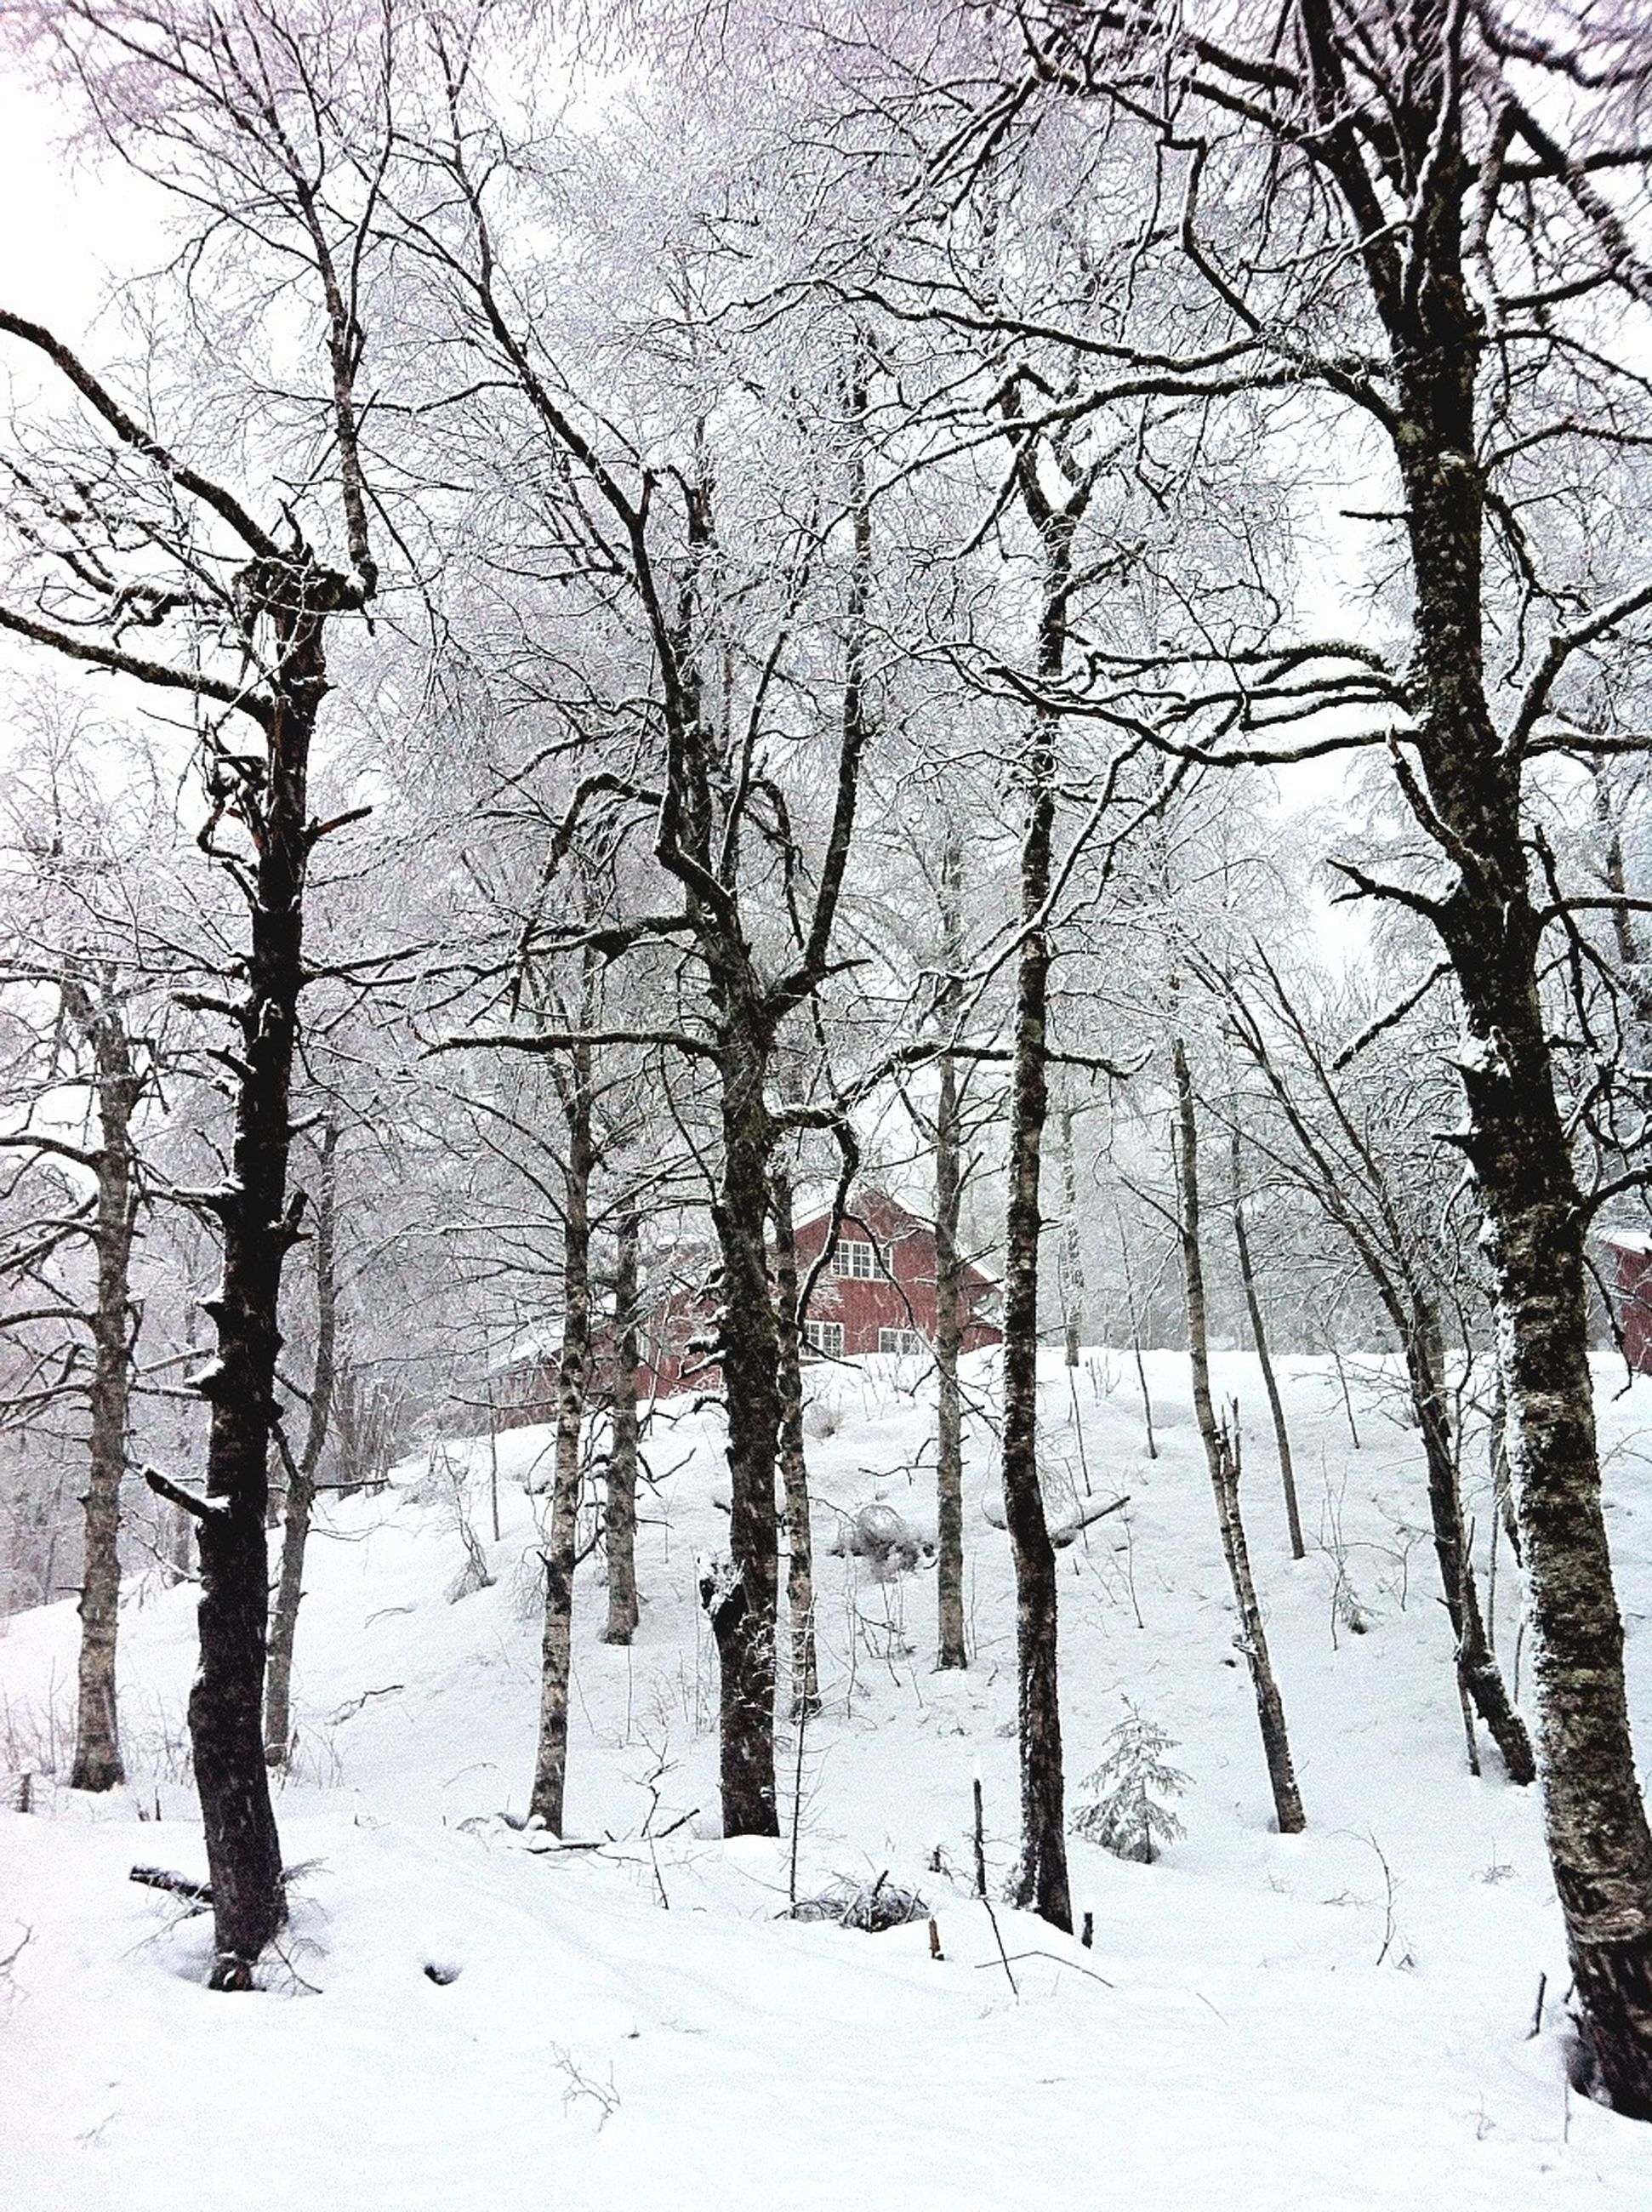 snow, winter, cold temperature, season, bare tree, weather, tree, tranquility, covering, landscape, tranquil scene, nature, tree trunk, field, branch, white color, frozen, beauty in nature, snow covered, cold